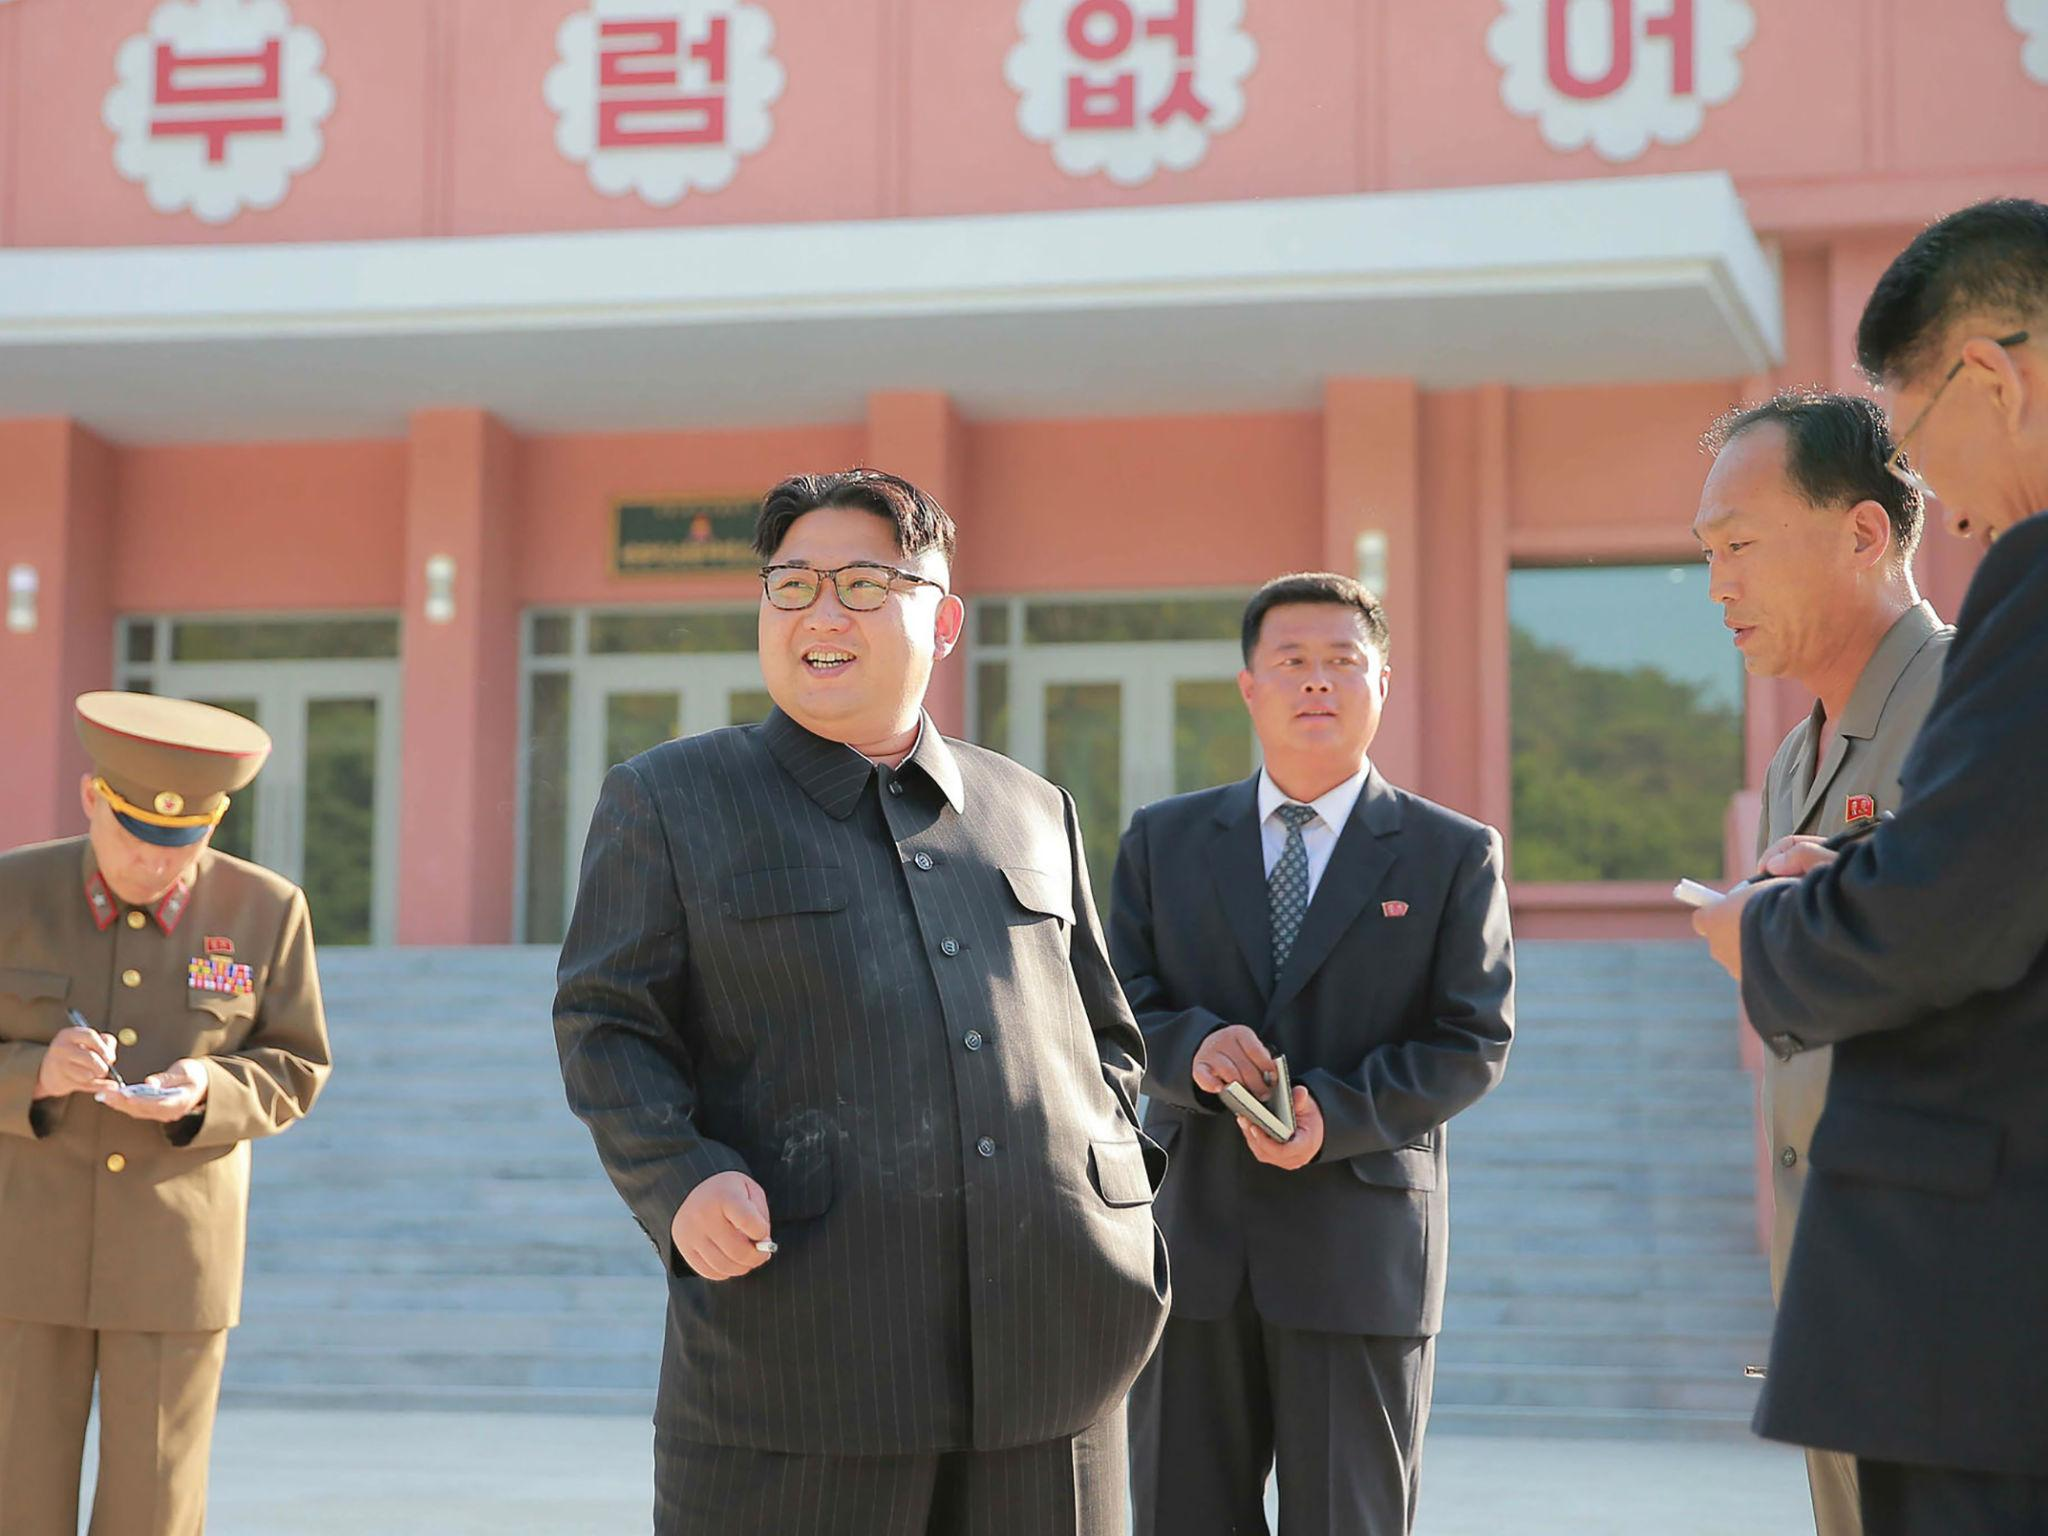 Kim Jong Un pictured smoking after North Korea launches national anti-smoking campaign | The Independent